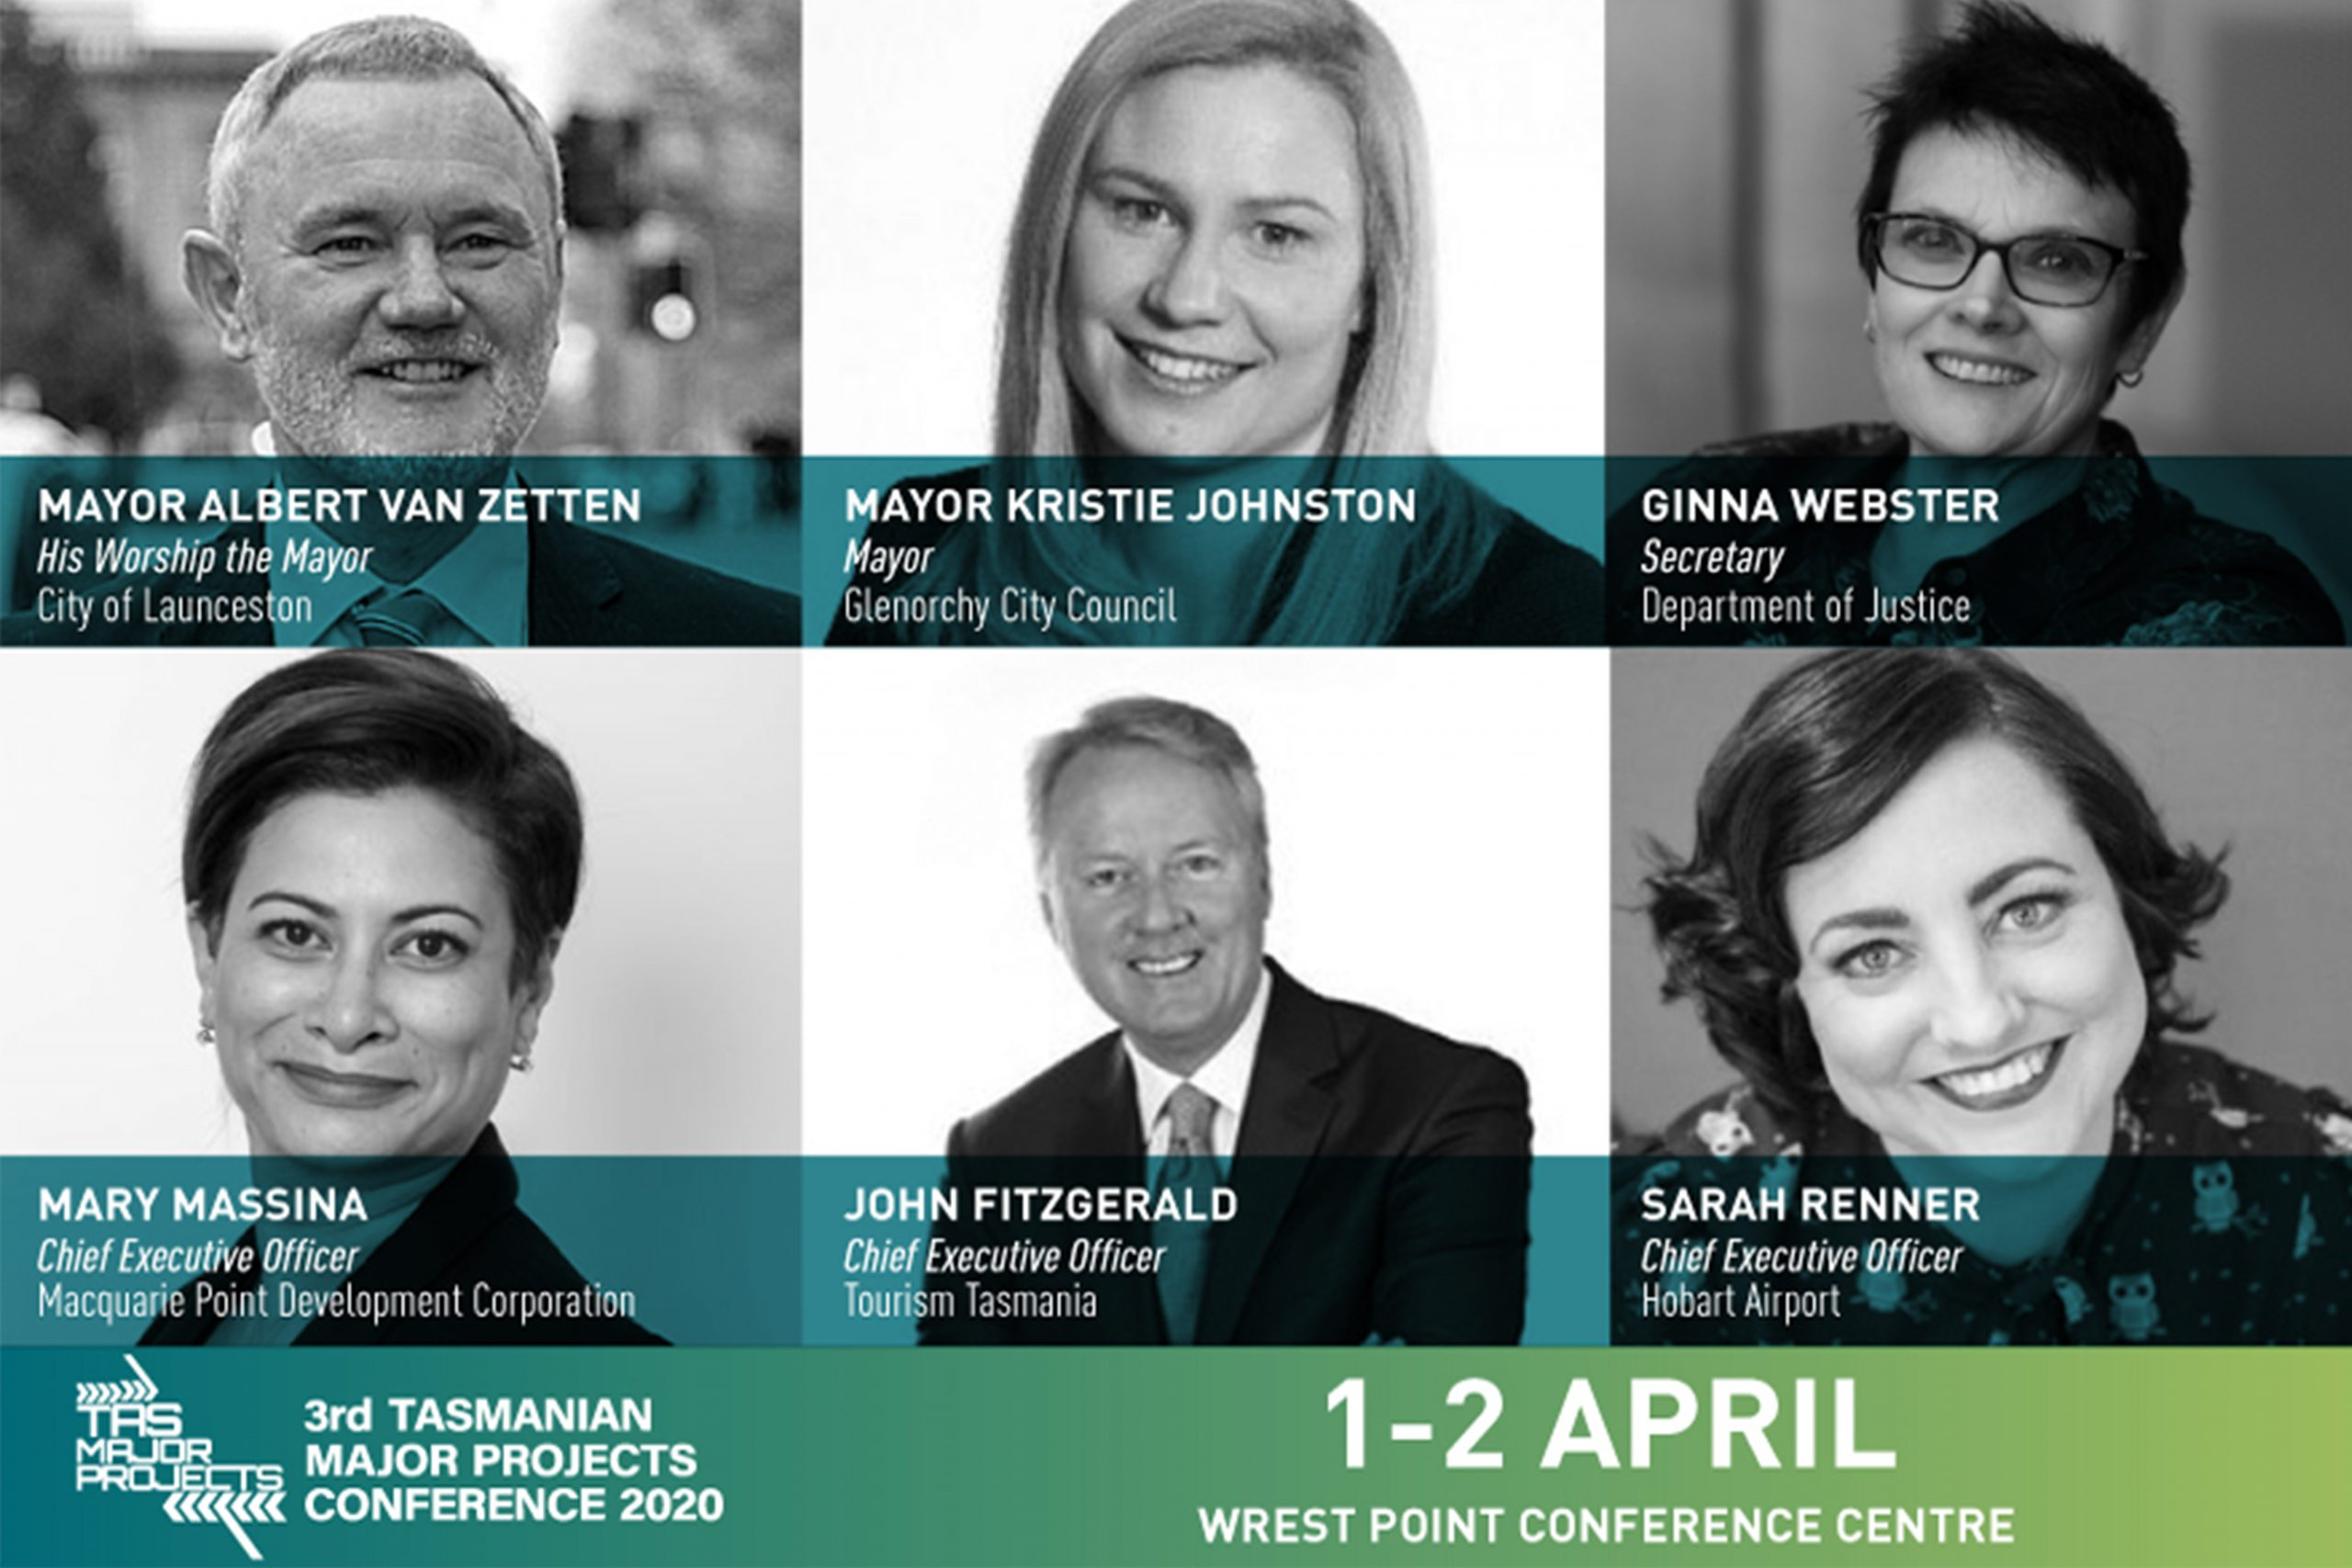 Tasmanian Major Projects Conference returns amidst infrastructure boom